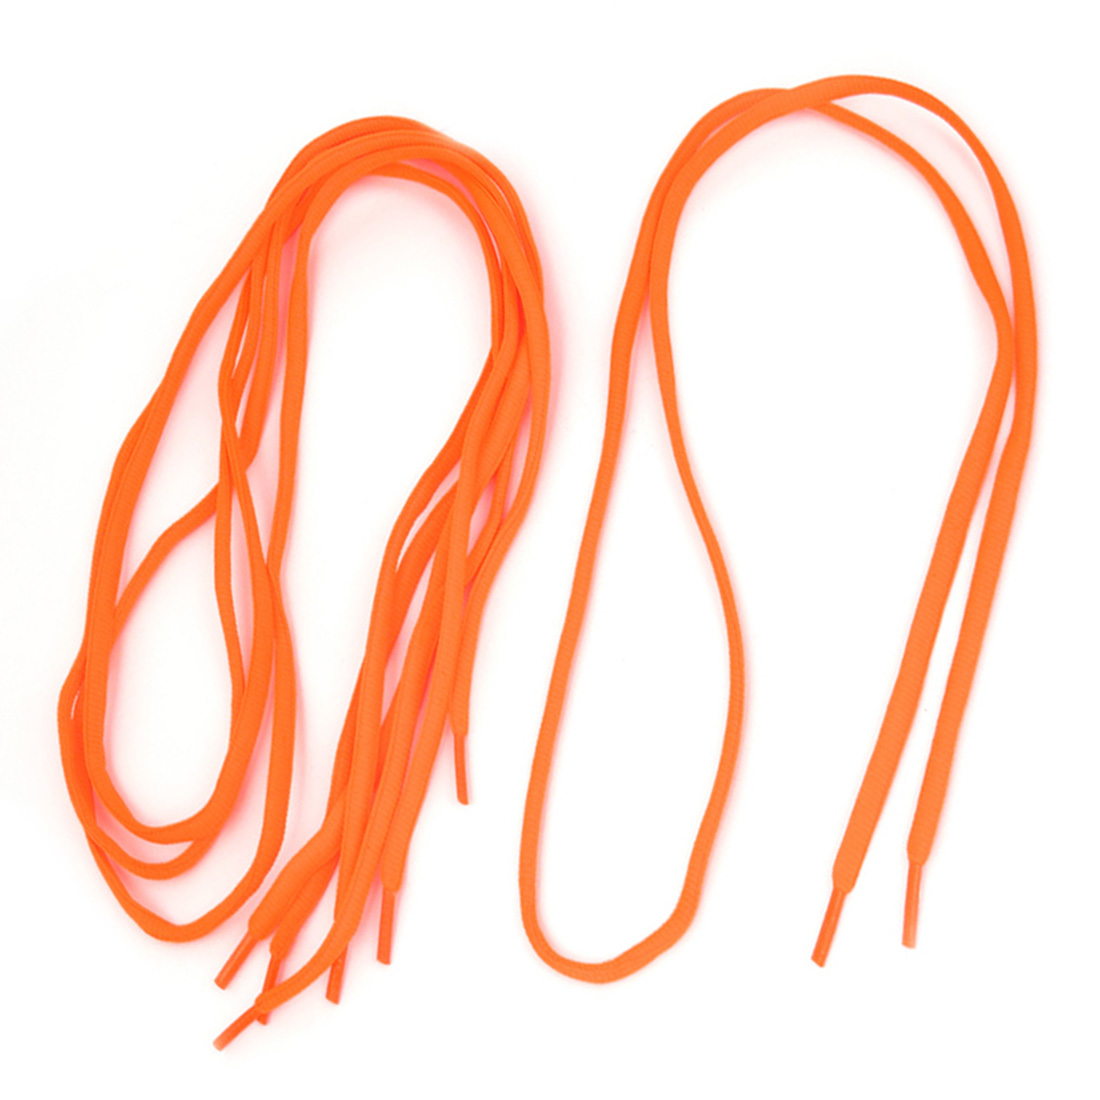 2 Pairs 110cm Long Orange Nylon Round Cord Shoe Laces Shoelaces Shoestring for Sneakers Shoes